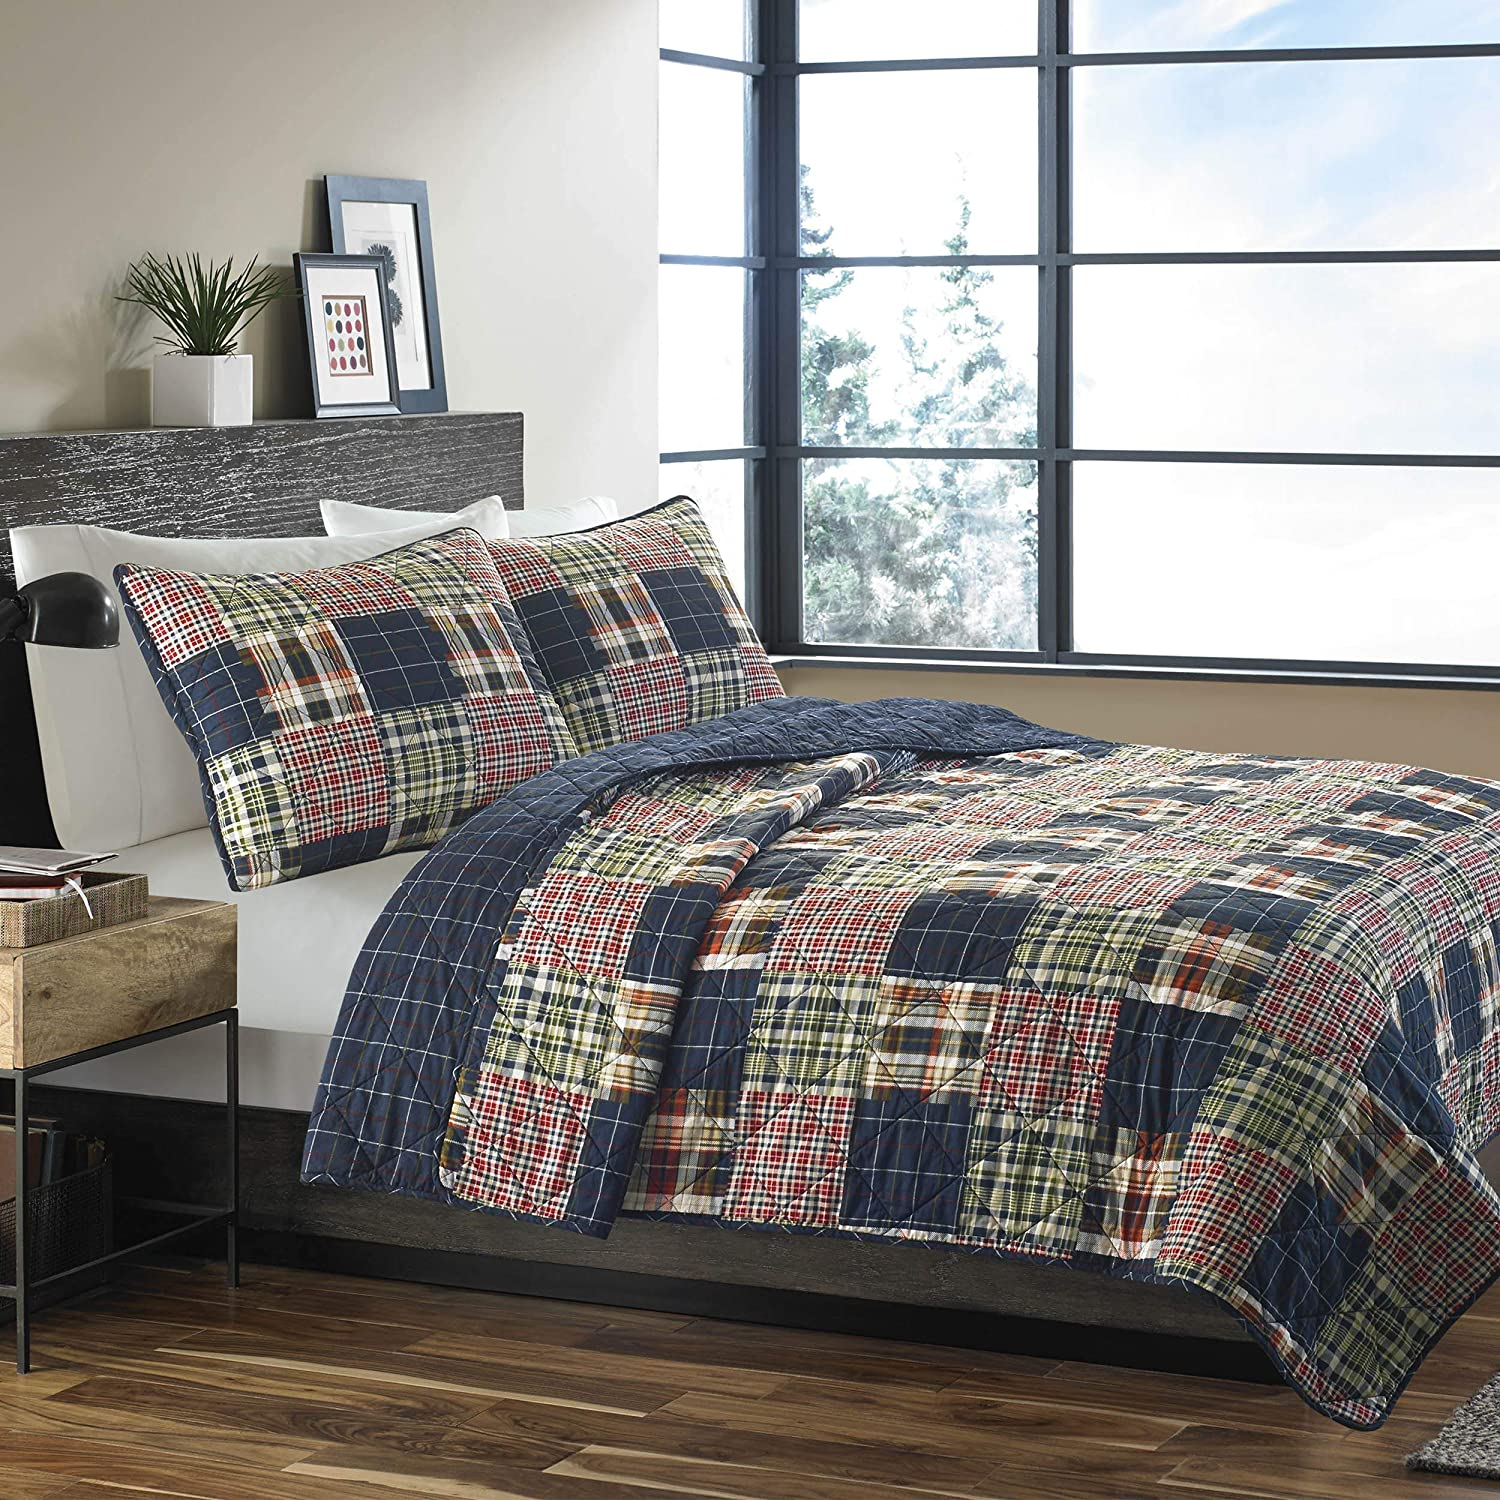 Eddie Bauer Quilt Set, Full/Queen